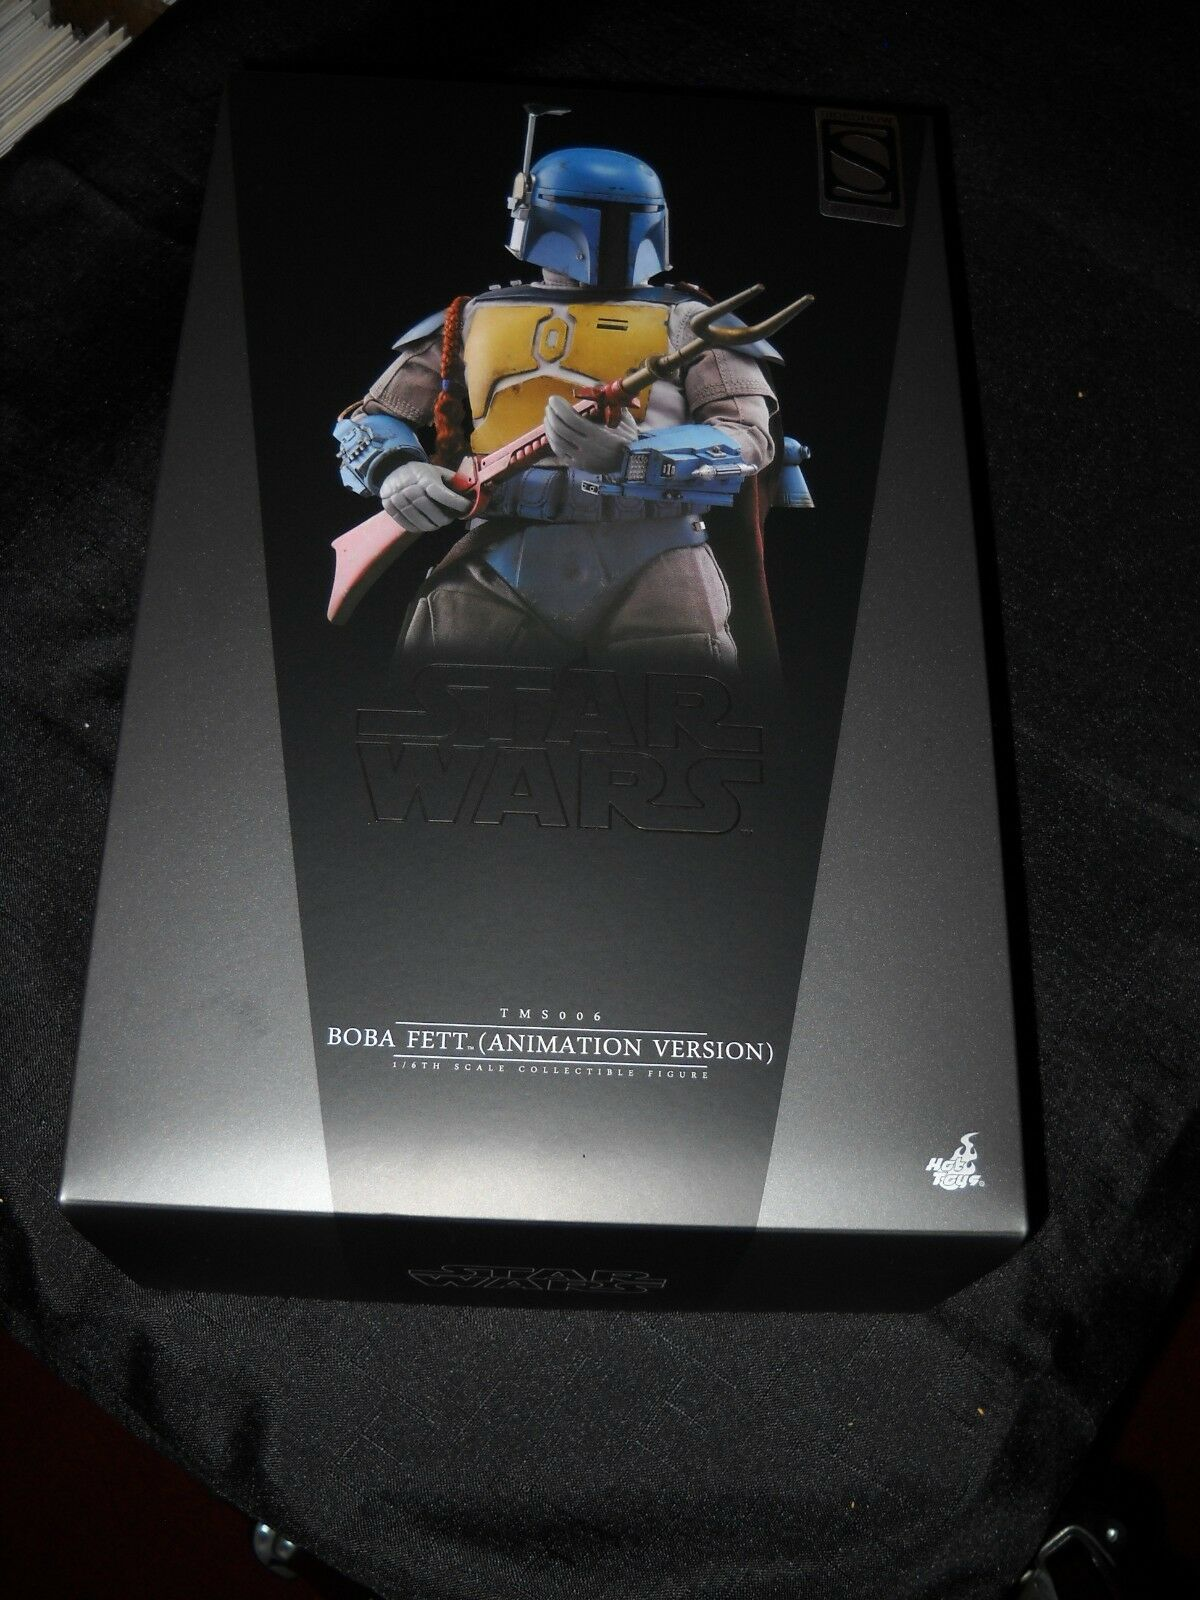 STAR WARS SIDESHOW HOT TOYS ANIMATED BOBA FETT SIXTH SCALE 1:6 TMS006